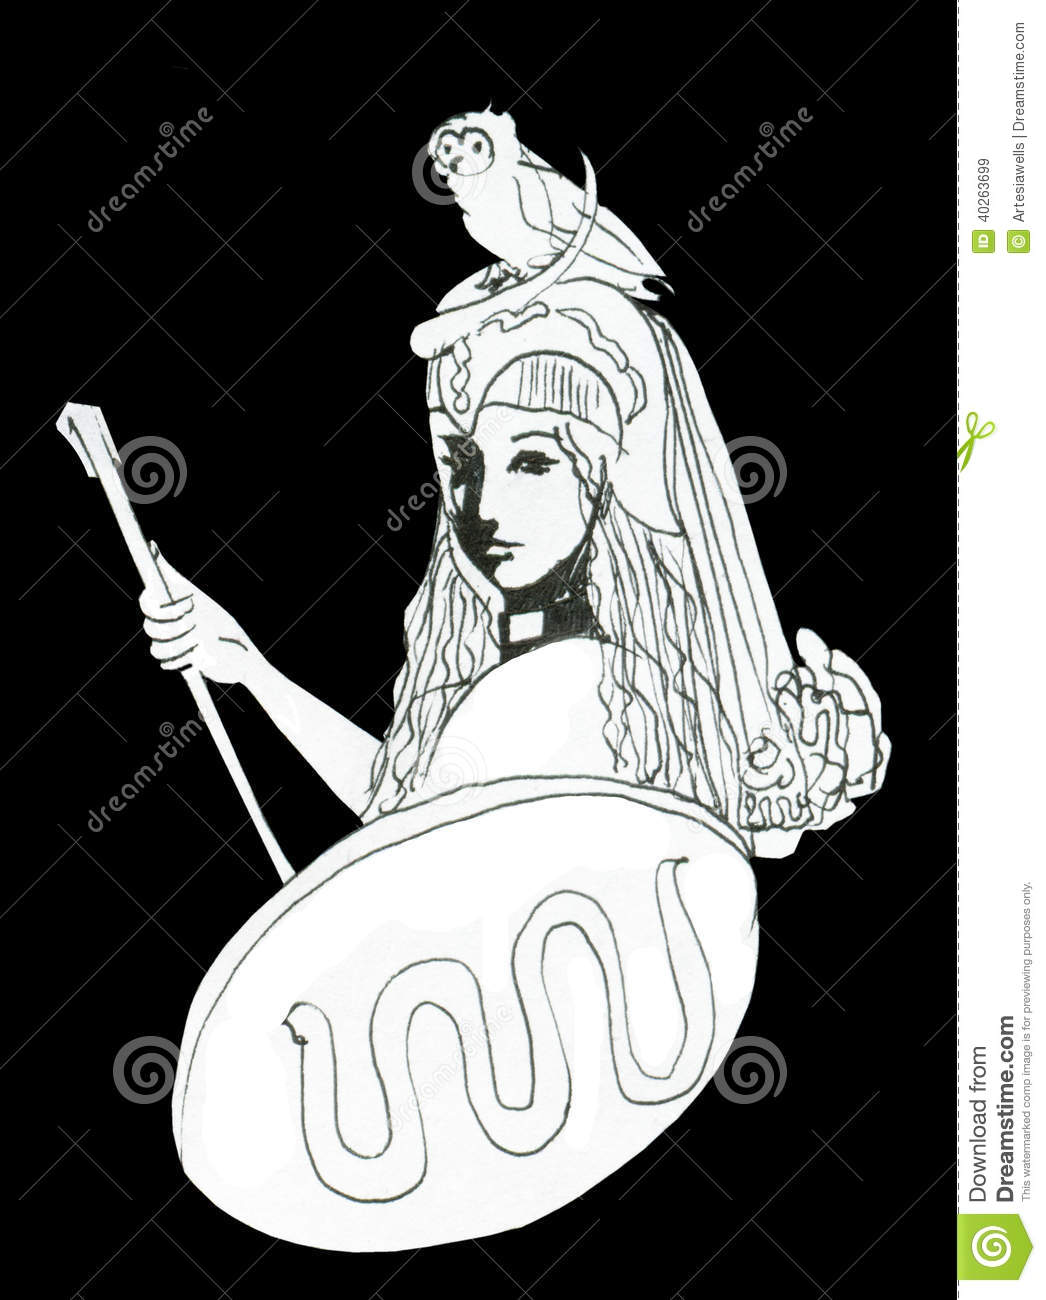 Pallas Athena Ink Drawing With Attributes Stock Illustration